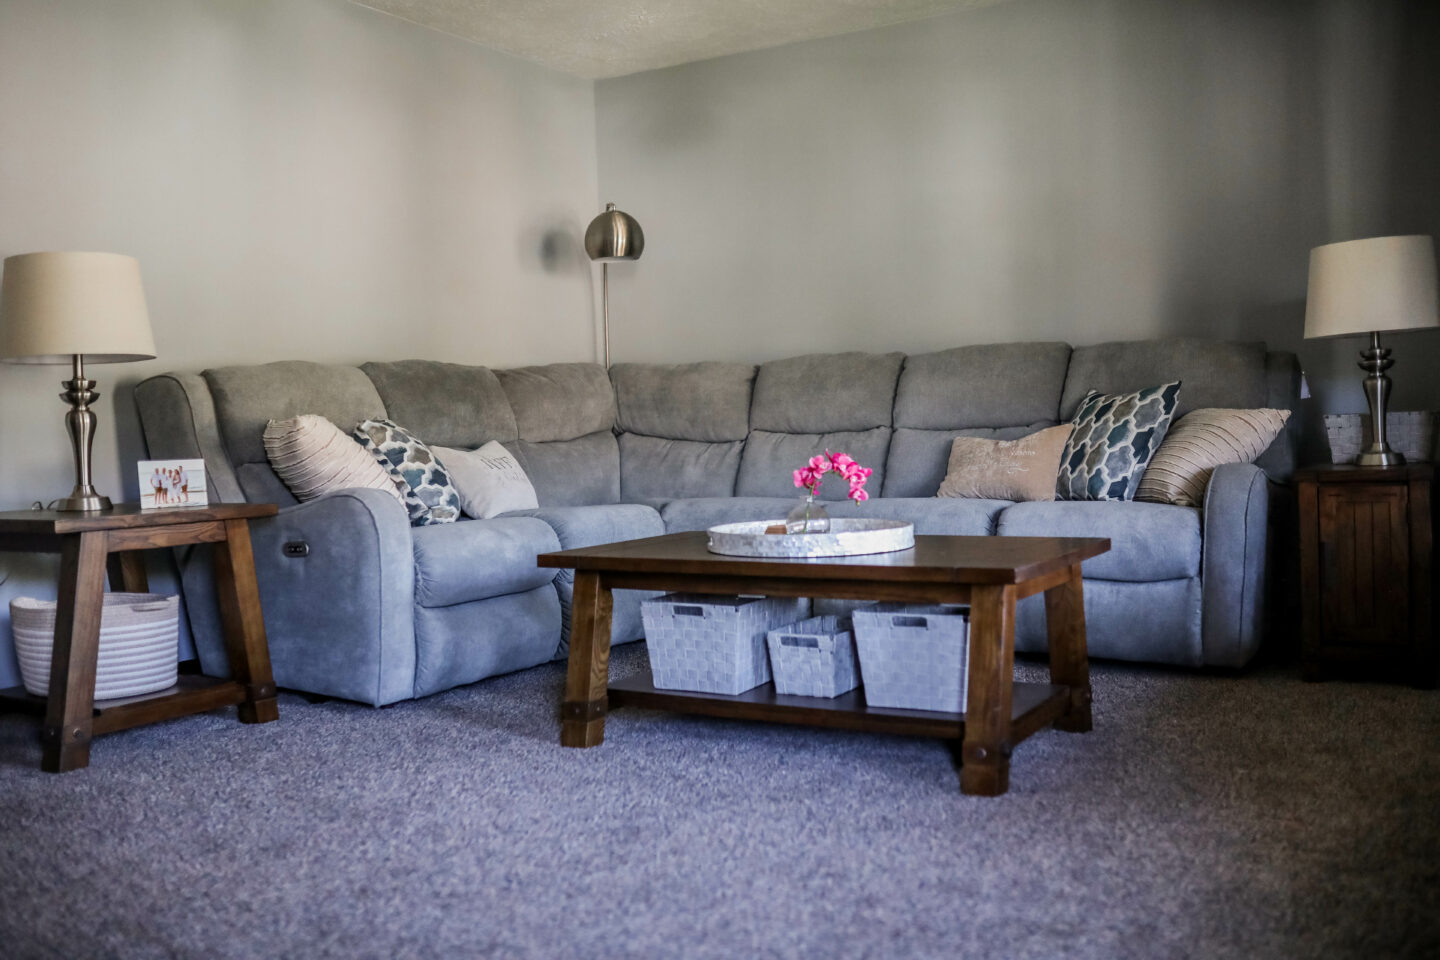 LIVING ROOM MAKEOVER - Totally transforming my parent's living room with Raymour & Flanigan!